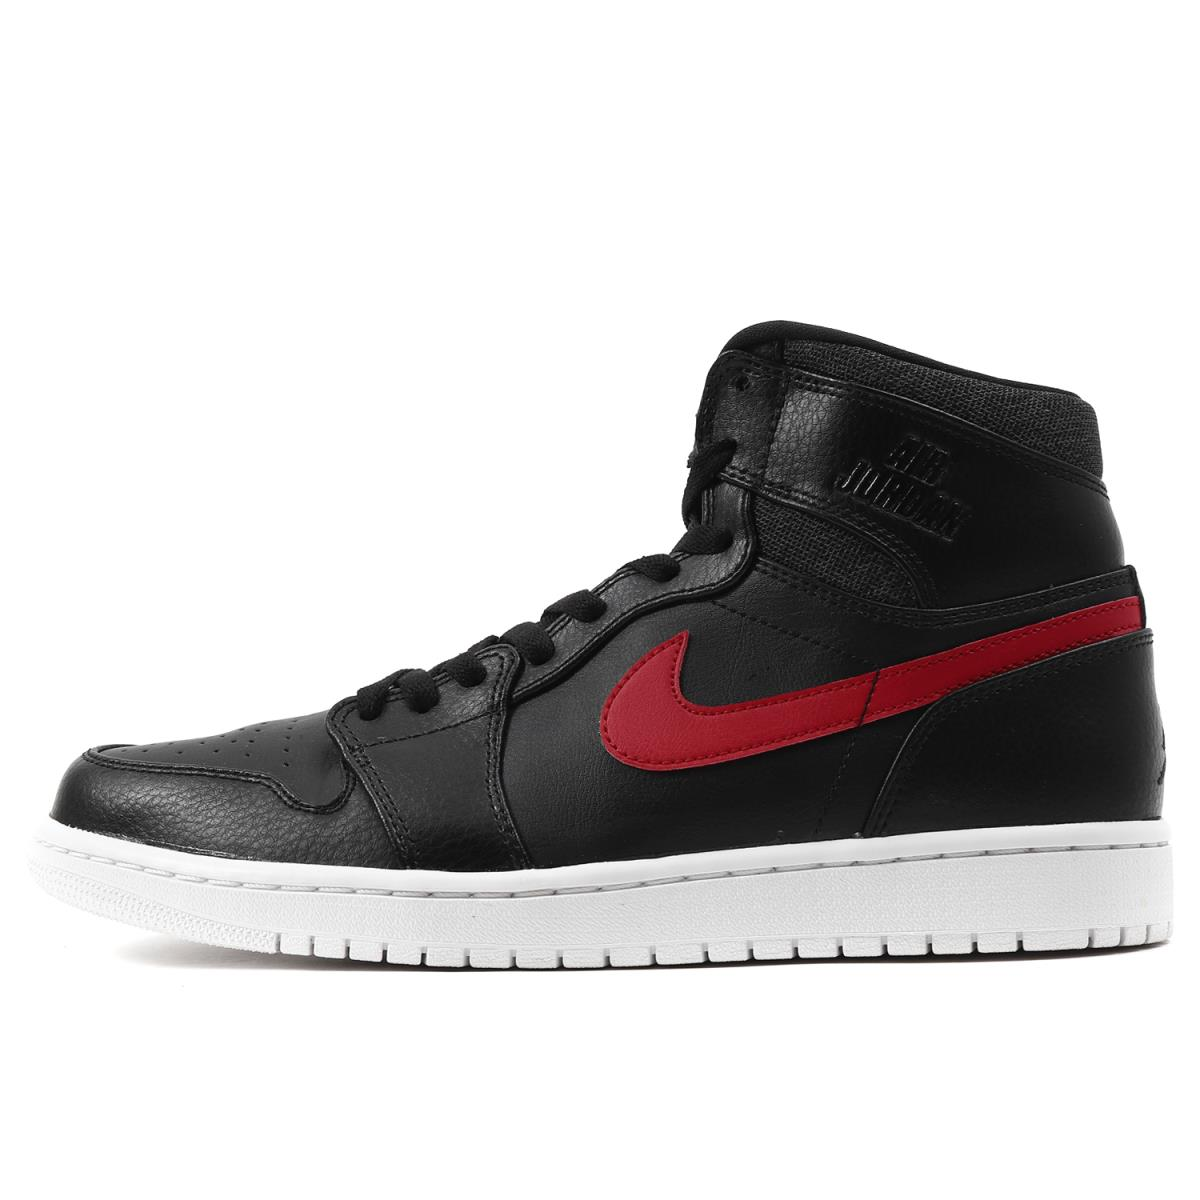 official photos a70e2 258c8 NIKE (Nike) AIR JORDAN 1 RETRO HIGH RARE AIR (332,550-012) black X gym red  US10(28cm)